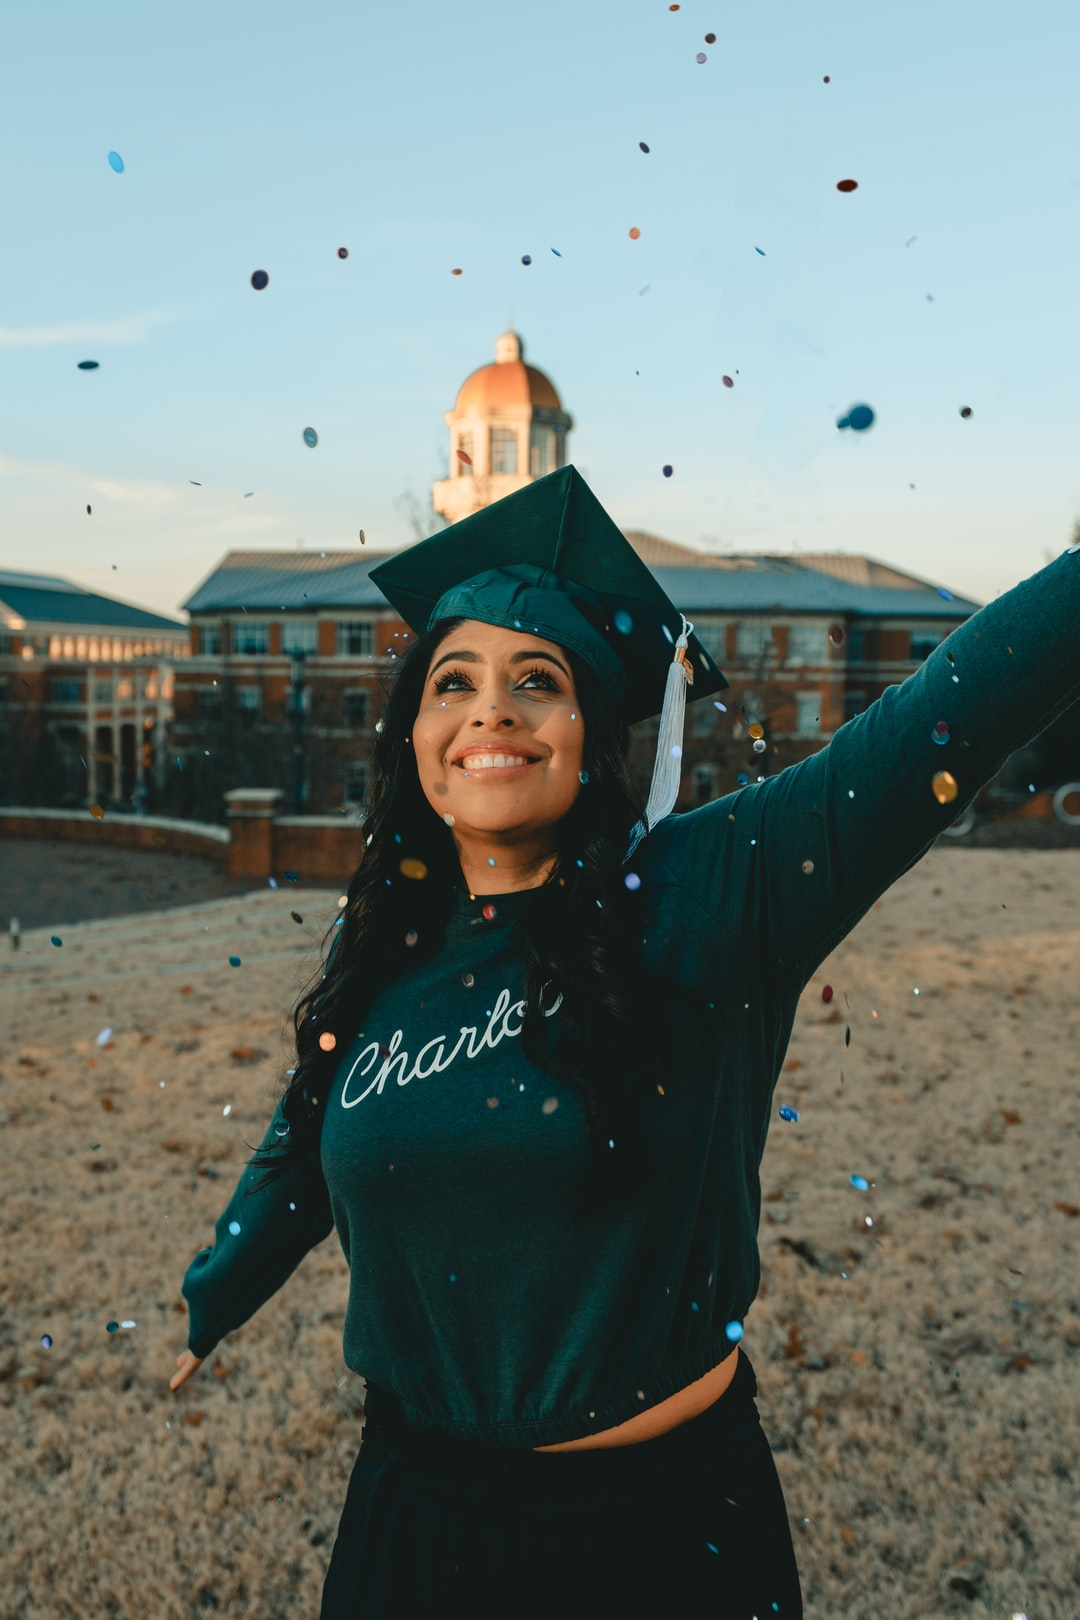 Graduation Celebration at UNC Charlotte, with confetti! (2/2) [ IG: @clay.banks ]